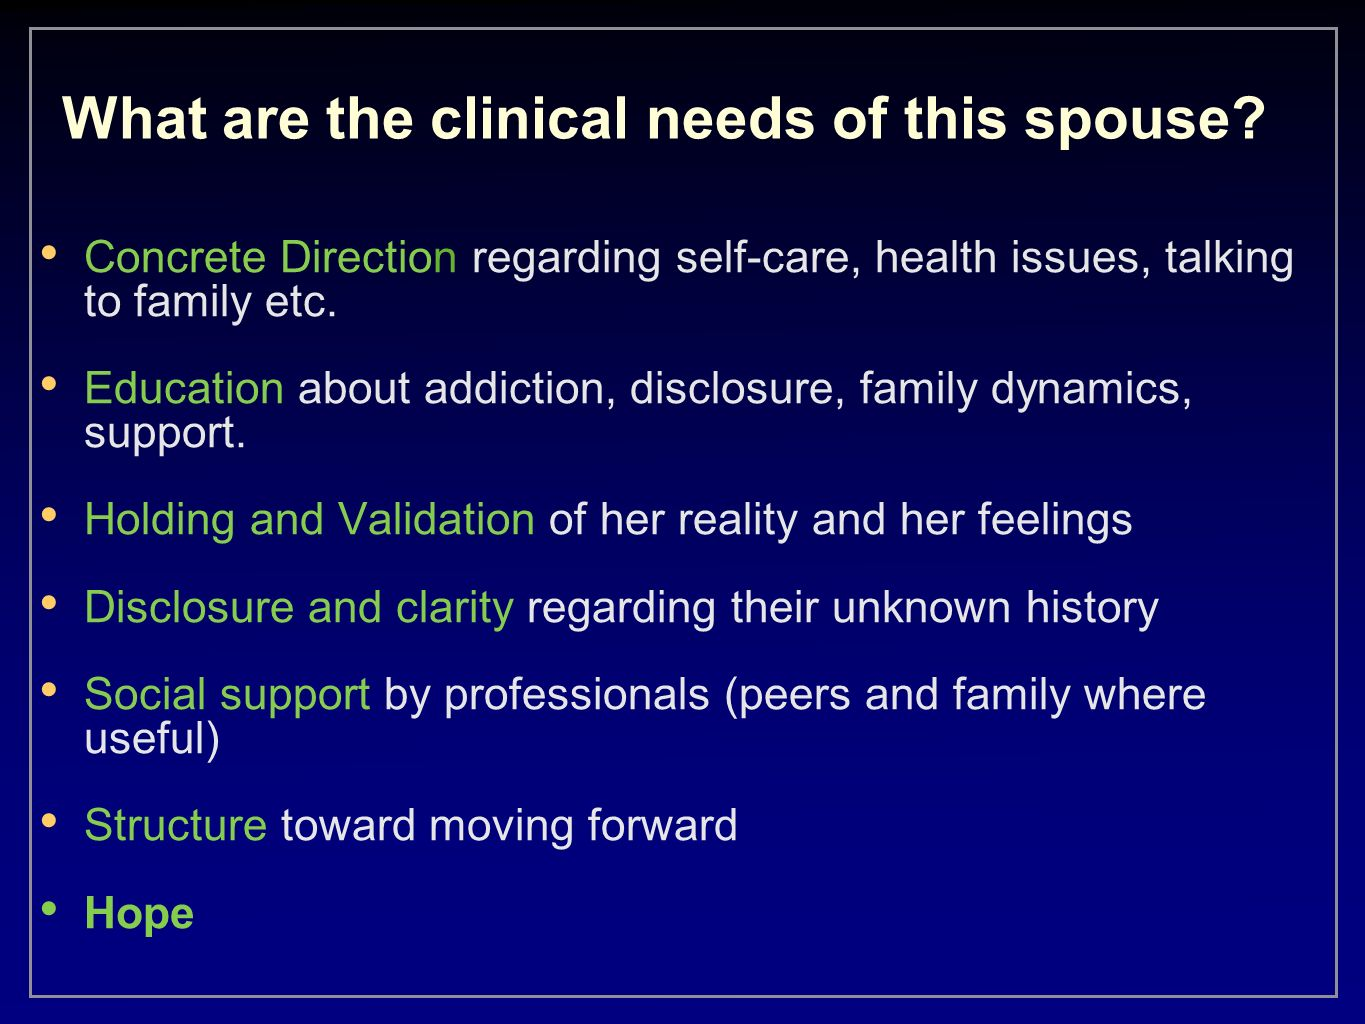 What are the clinical needs of this spouse